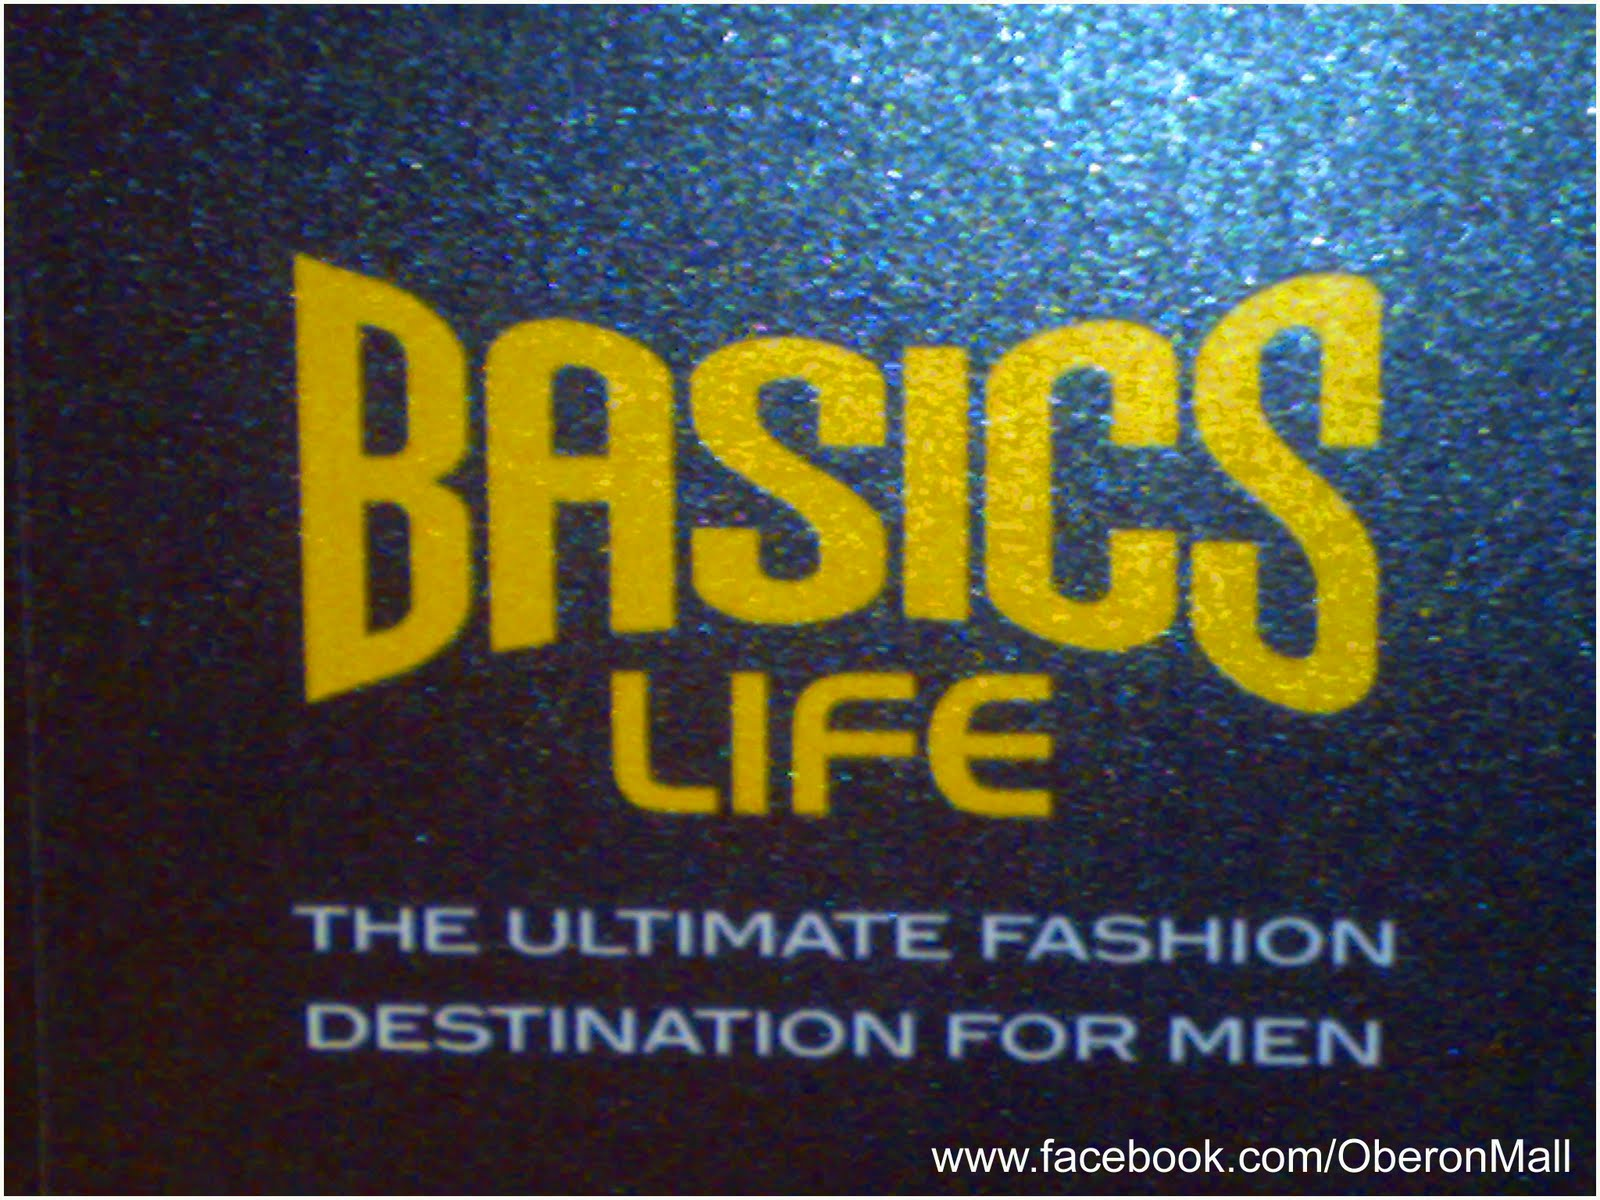 Oberon Mall: Offers @ Basics Life.